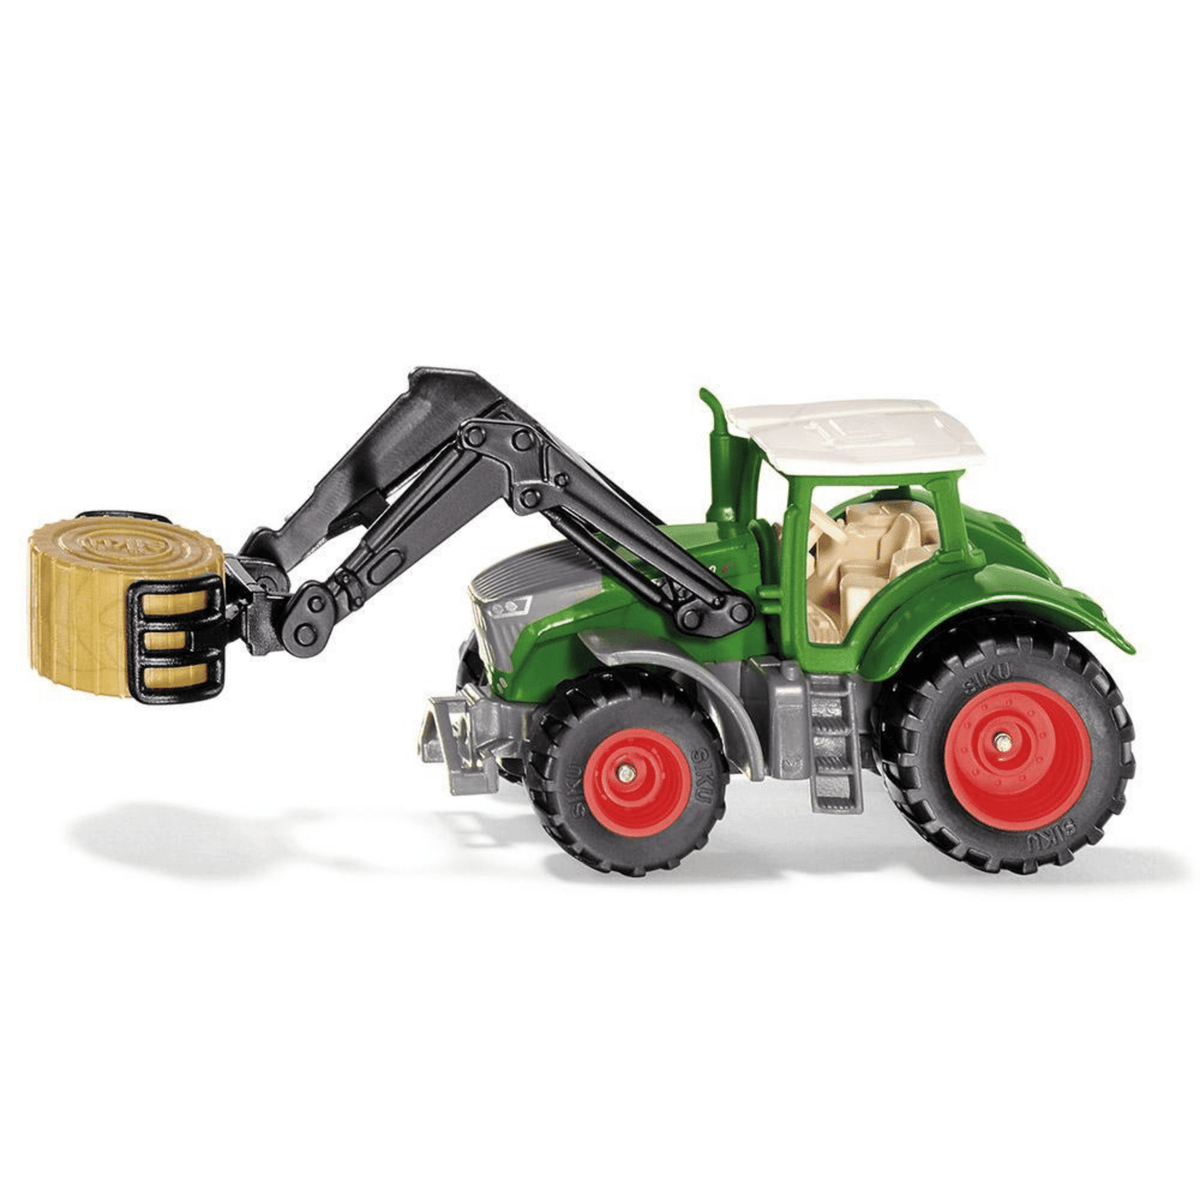 Siku Mini Fendt Vario 1050 toy tractor with bale gripper